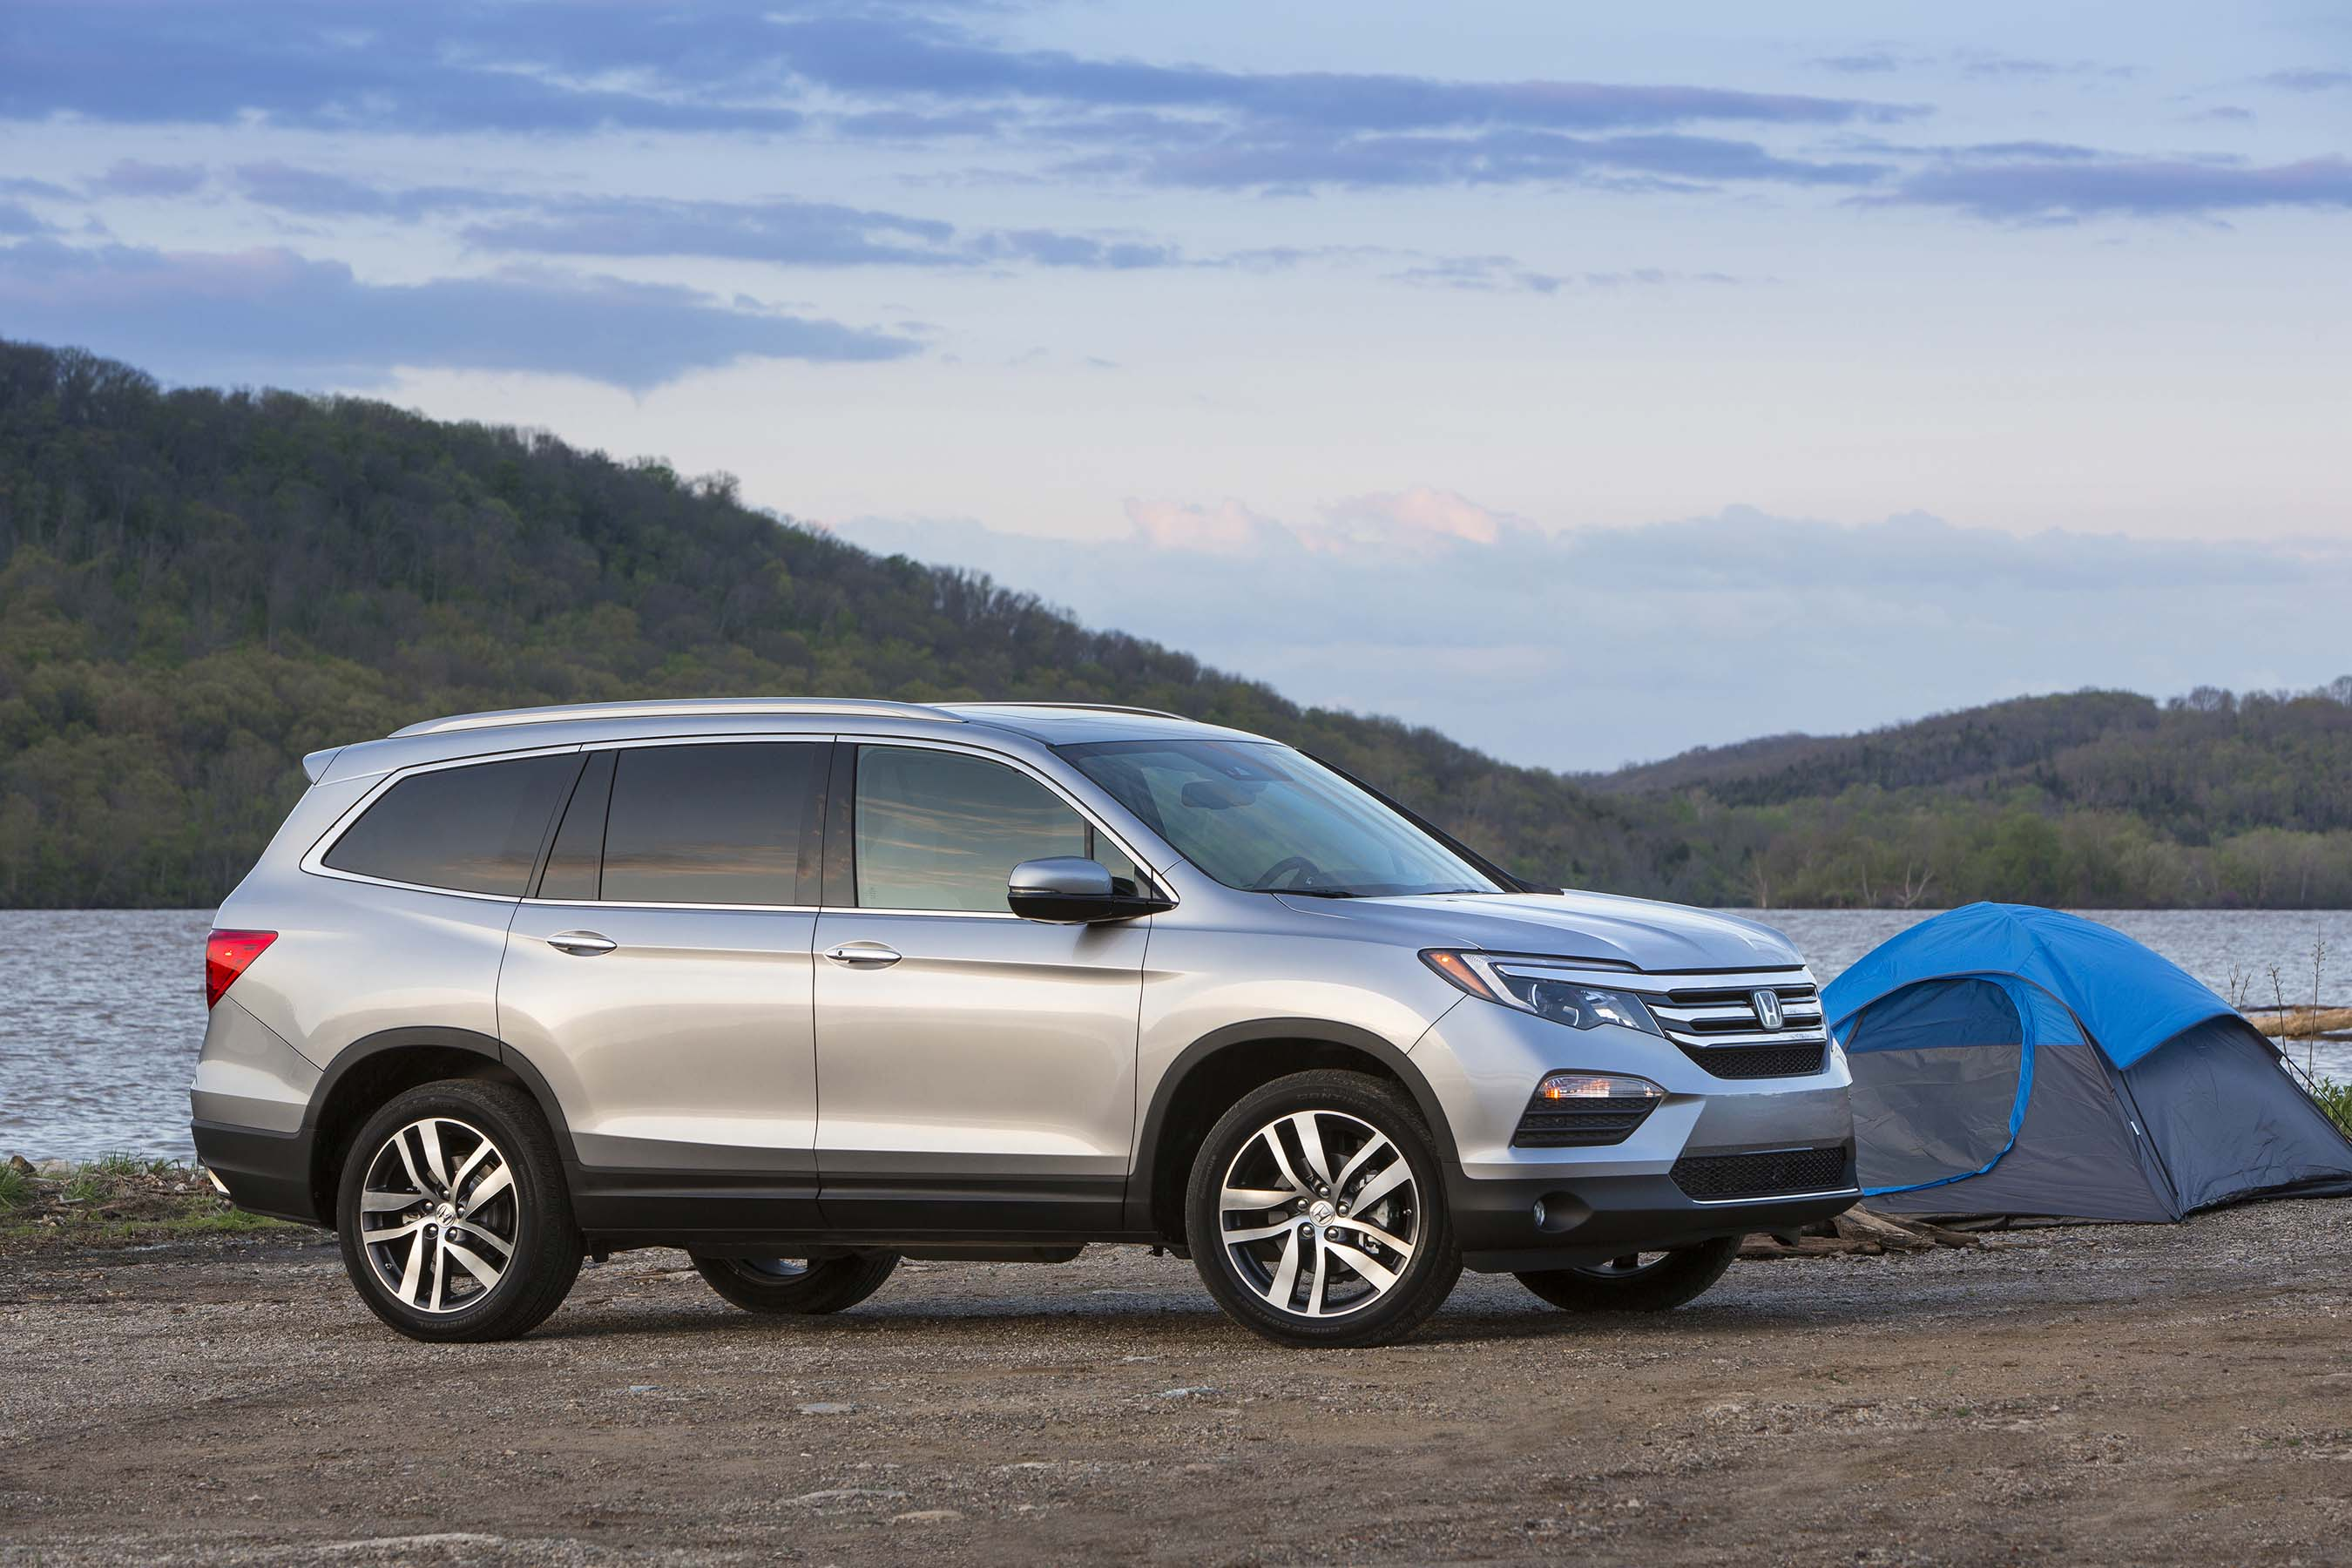 kbb 16 best family car the totally redesigned 2016 honda pilot is the